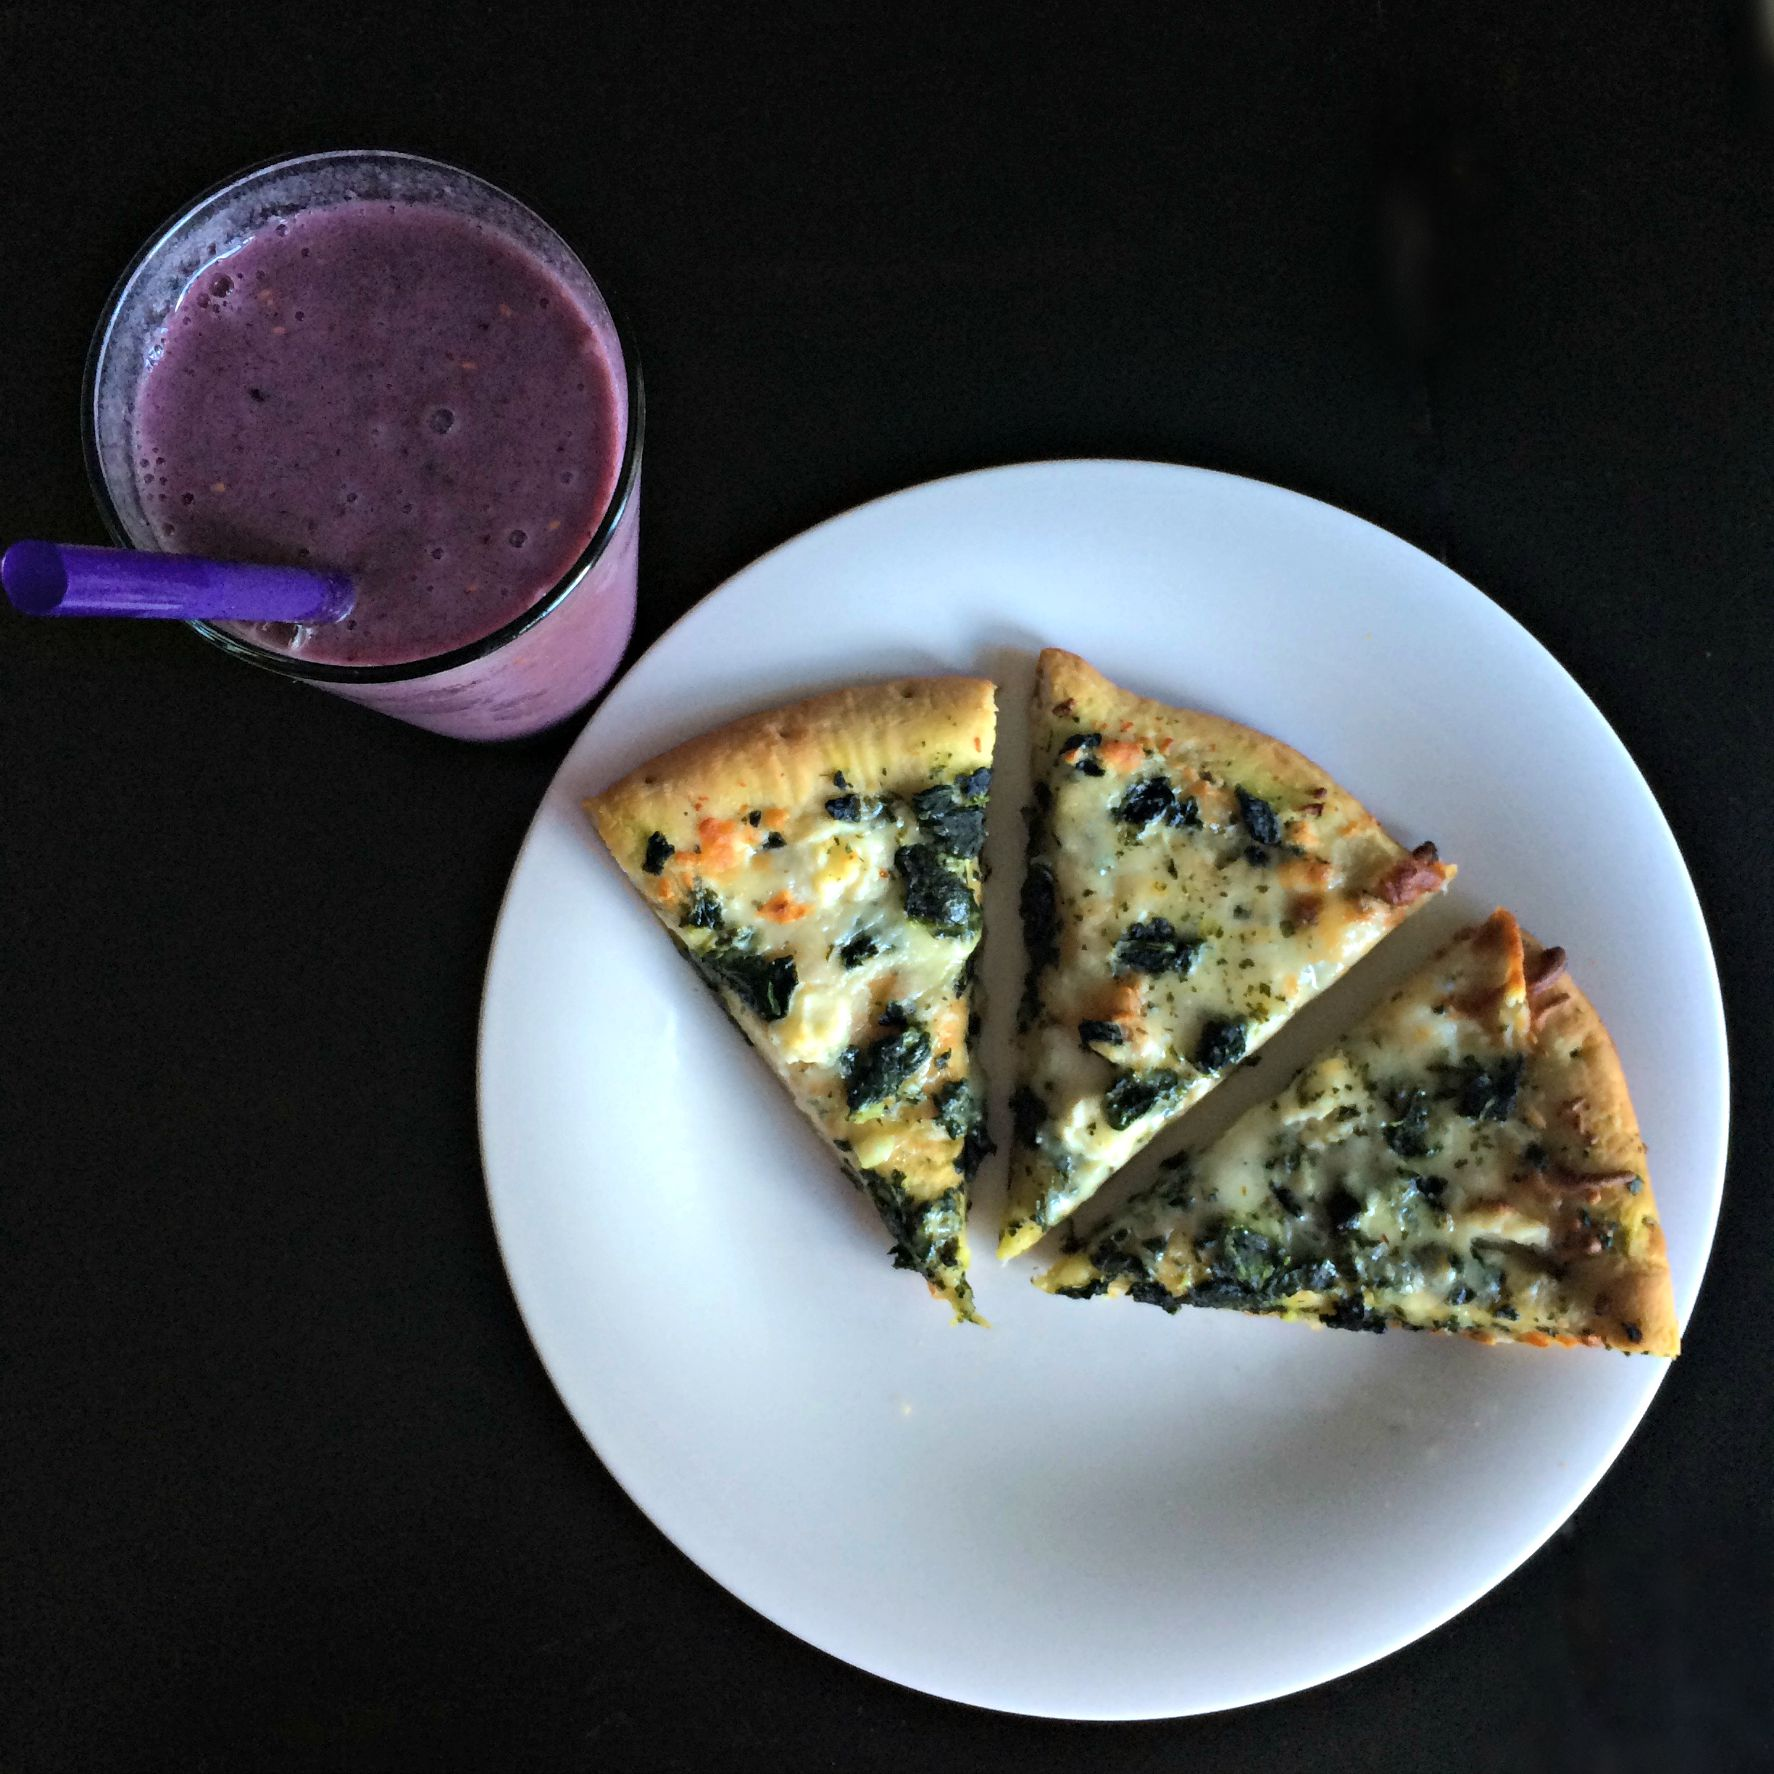 smoothie and leftover pizza